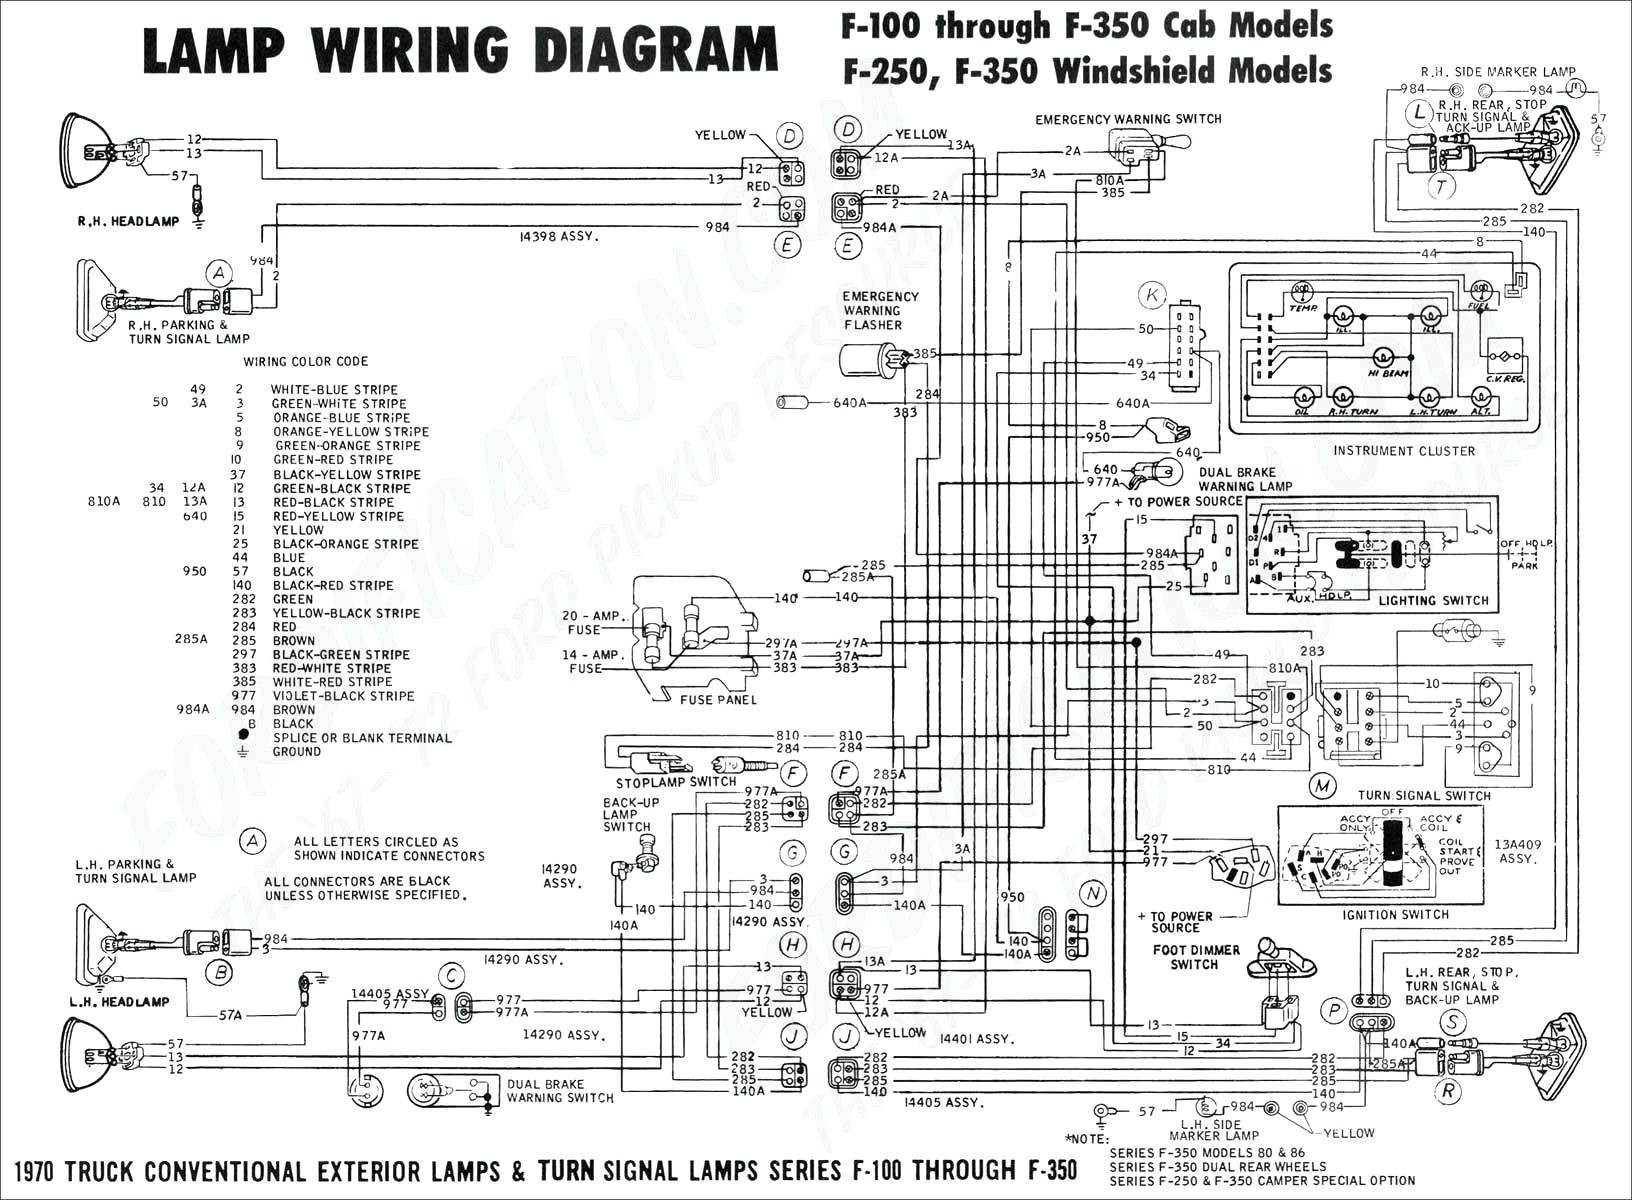 1999 Ford F250 Super Duty Radio Wiring Diagram